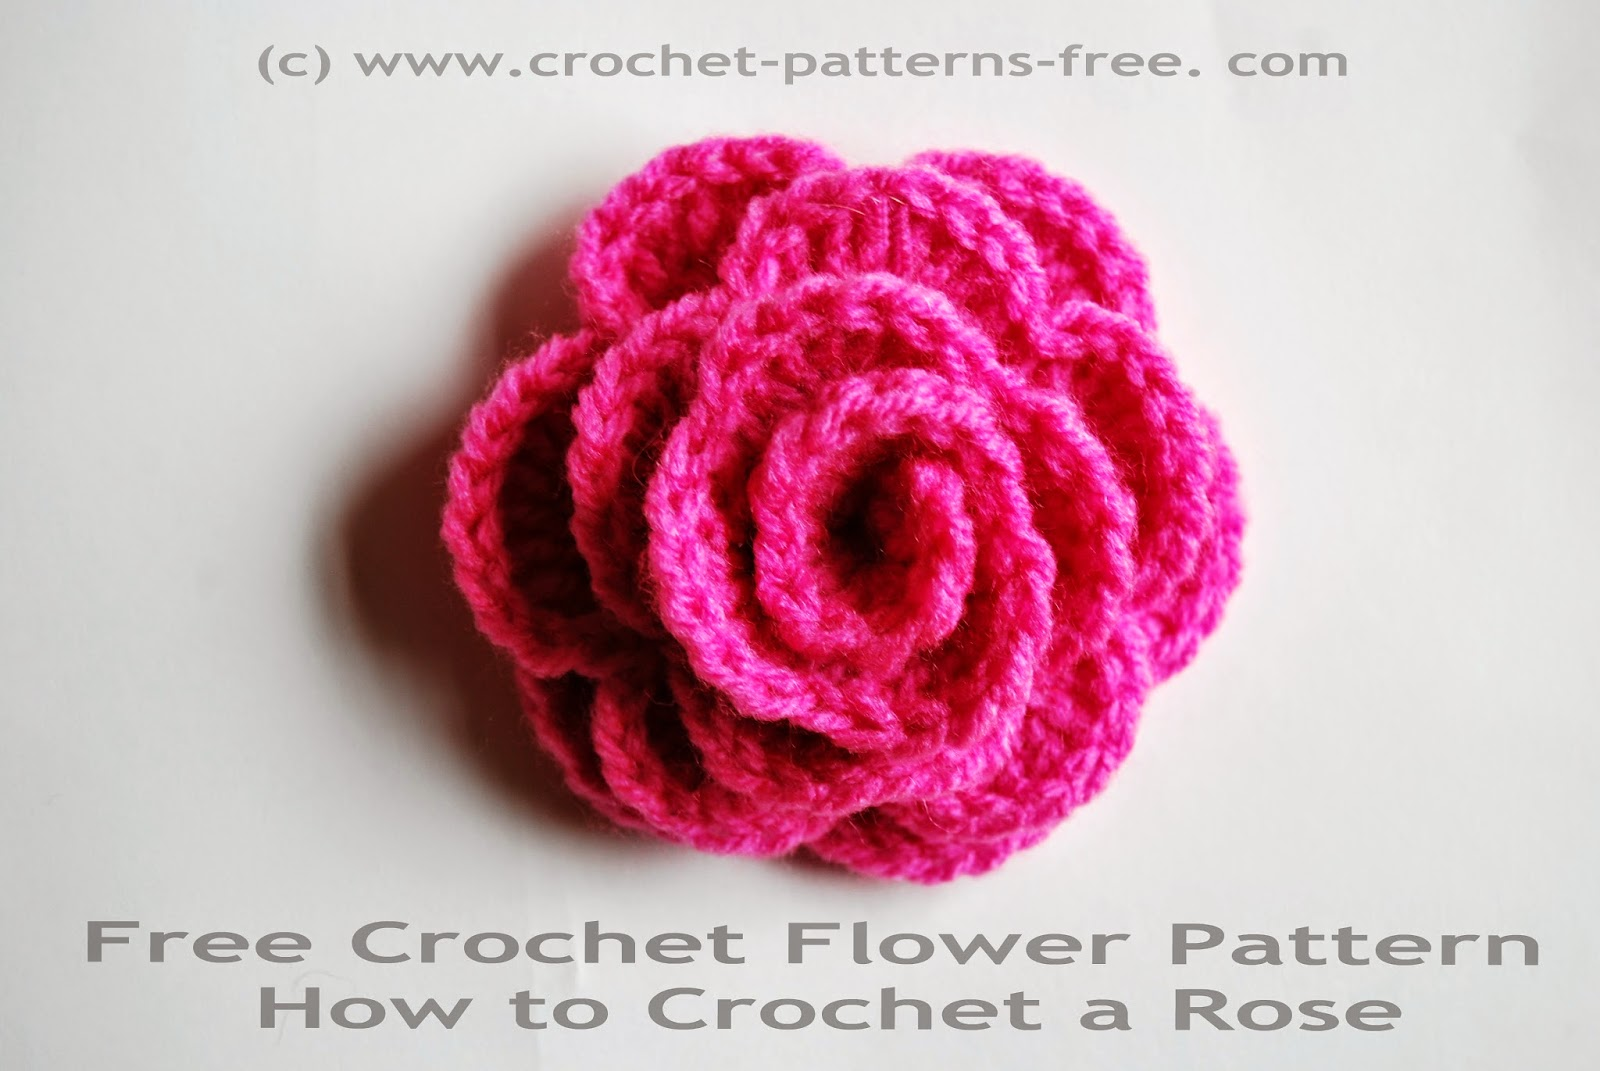 Crochet Patterns Roses Free : Free Crochet Flower Pattern How to crochet a rose Free Crochet ...